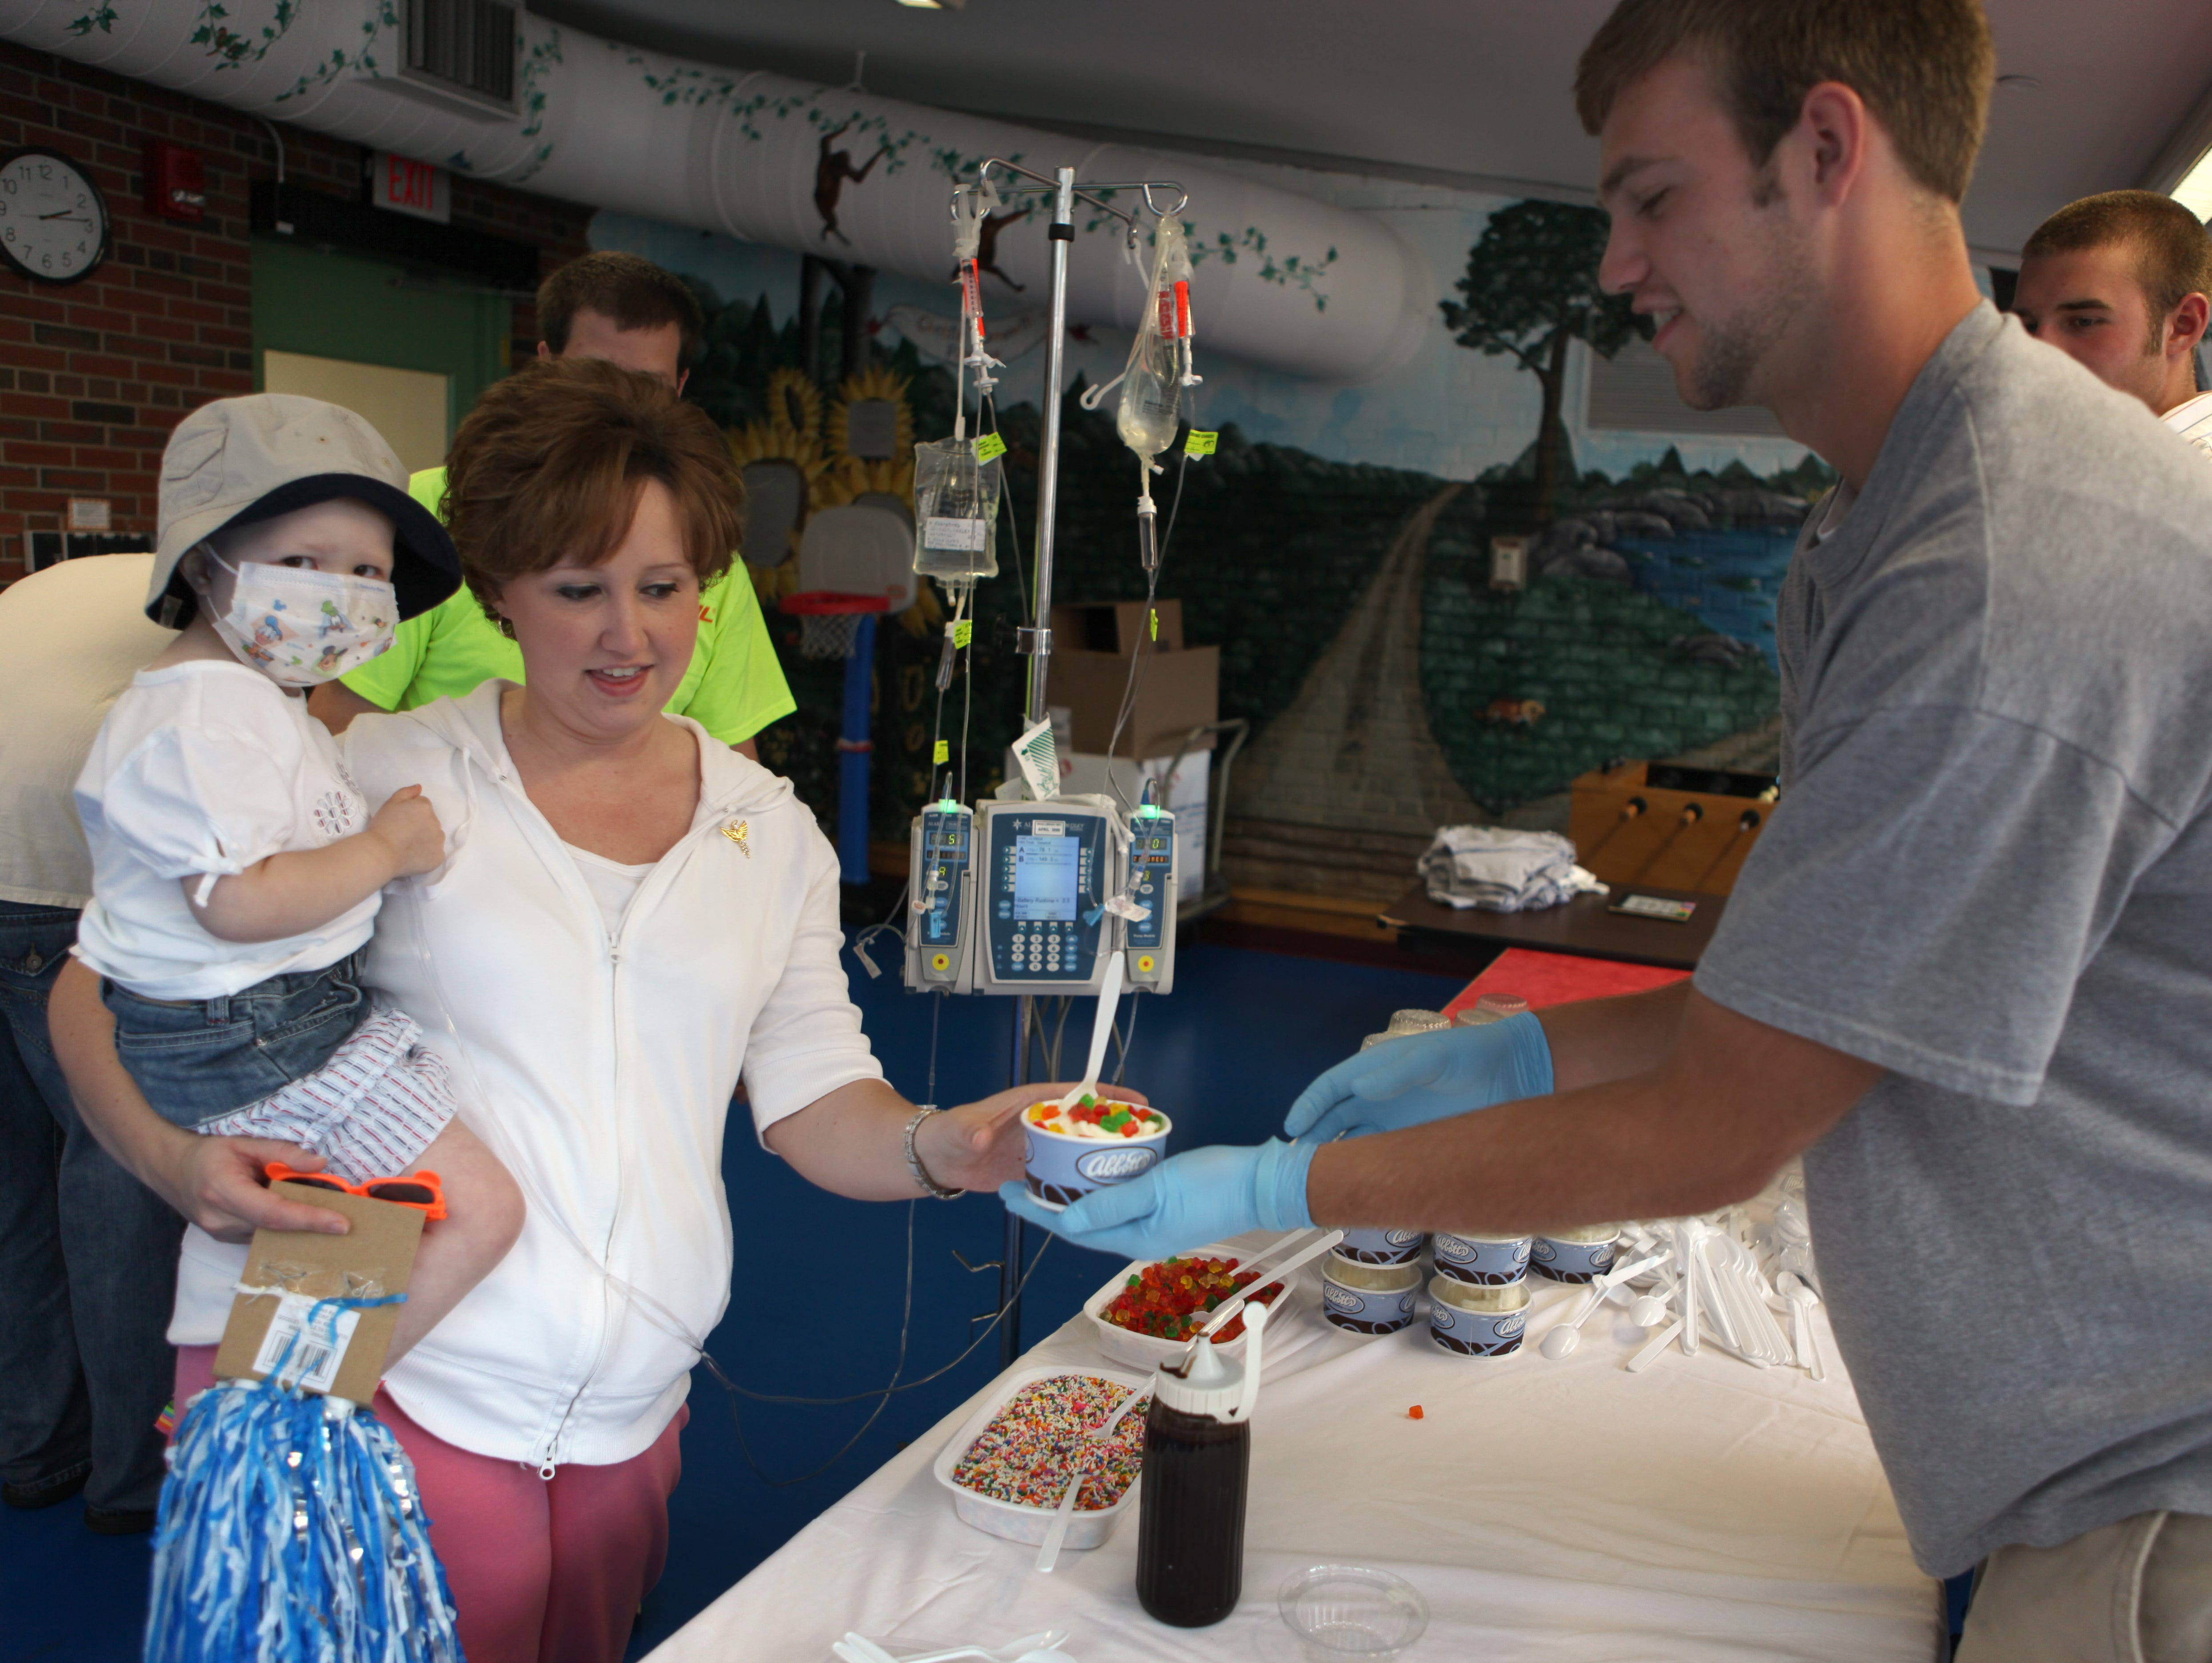 Former Livonia High football player Matt Girolmo, right, serves ice cream to Hailey Coniber, held by her mother Missy Coniber at the Golisano Children's Hospital at Strong before the 2009 Eddie Meath All-Star Game.